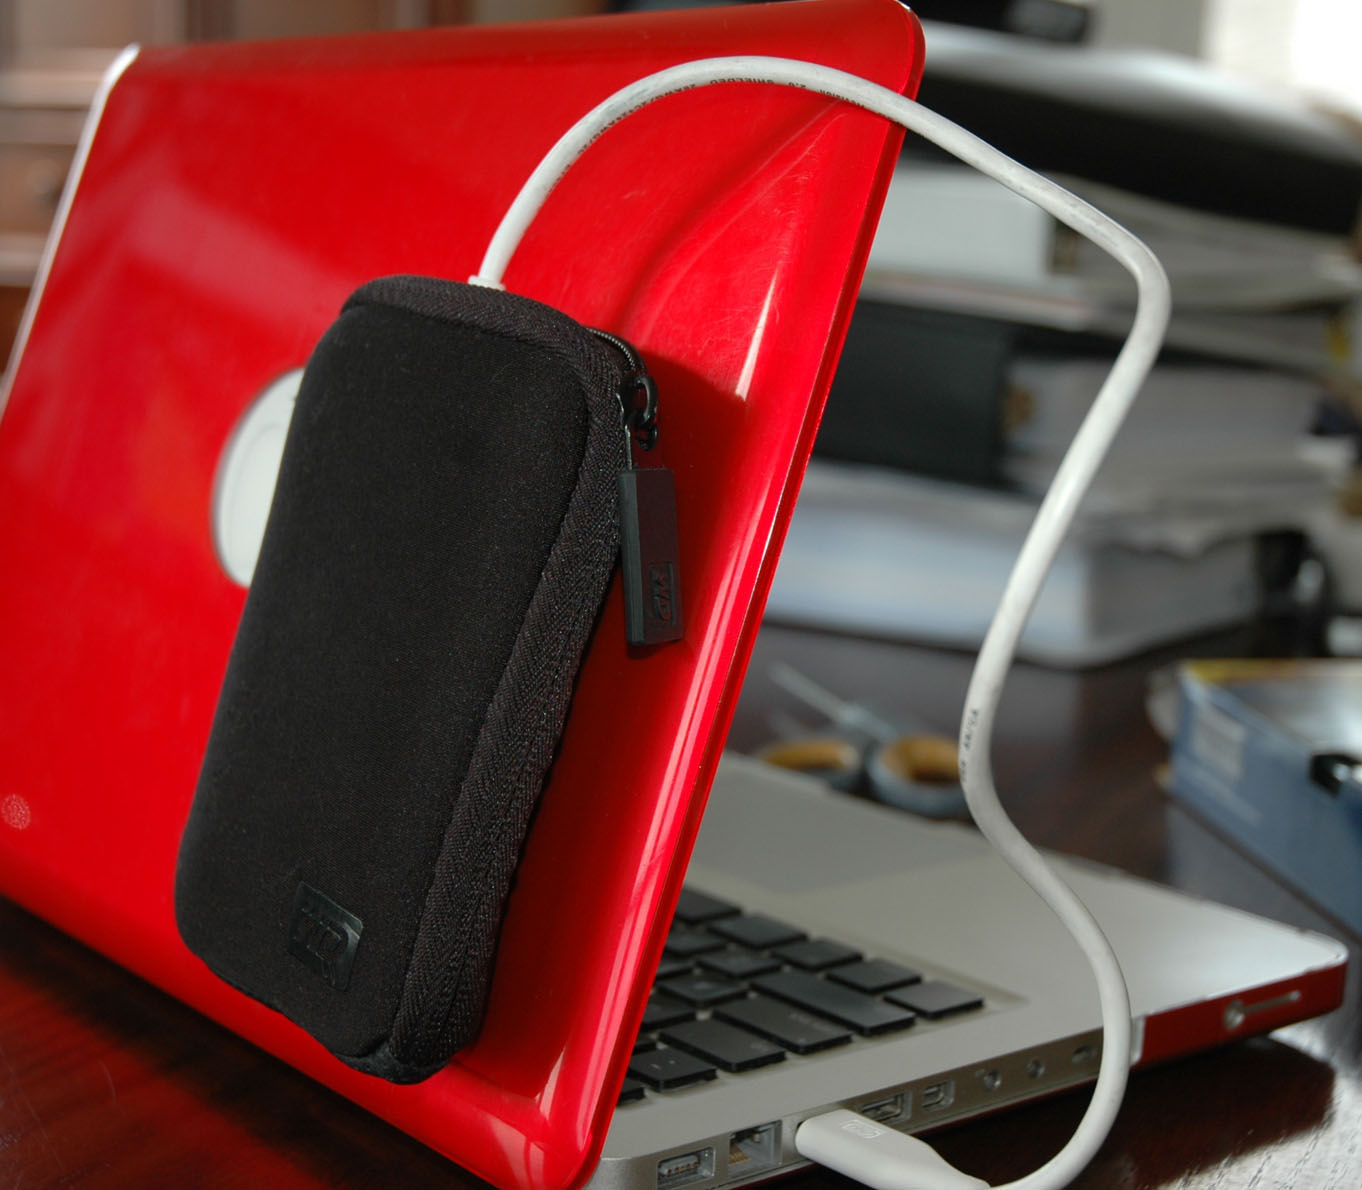 how to remove an external hard drive from its case